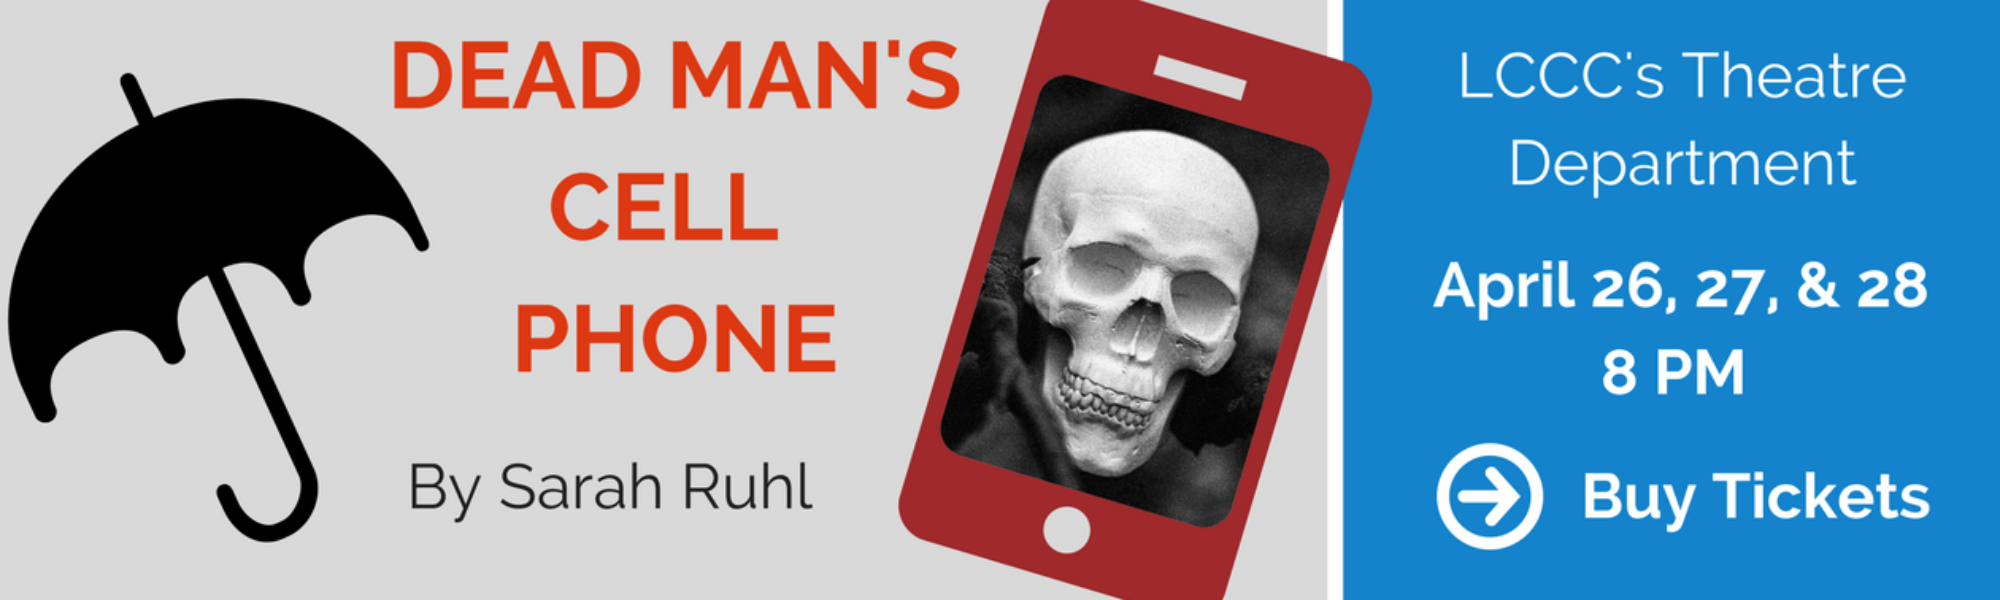 "LCCC's Theatre Department production of ""Dead Man's Cell Phone"" by Sarah Ruhl. Playing April 26, 27, and 28 at 8 p.m. Select to learn more and purchase tickets"